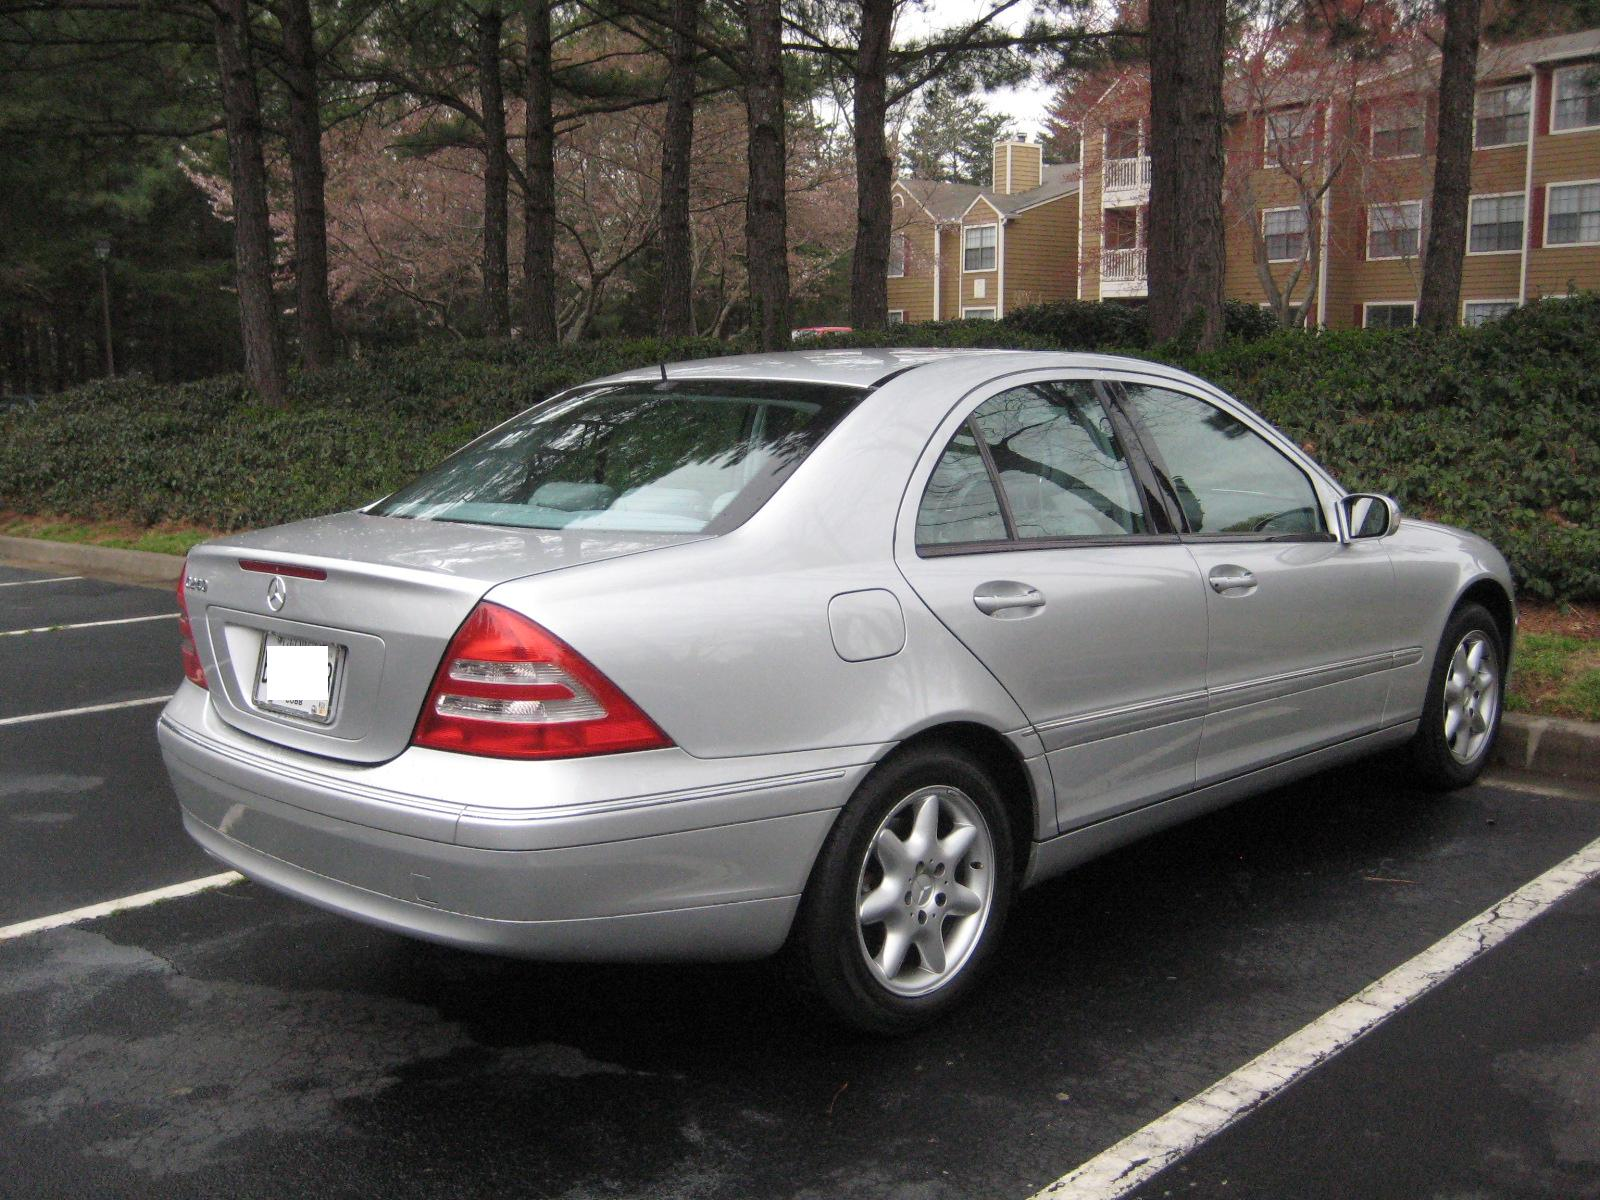 2001 mercedes benz c class pictures cargurus for 2001 mercedes benz